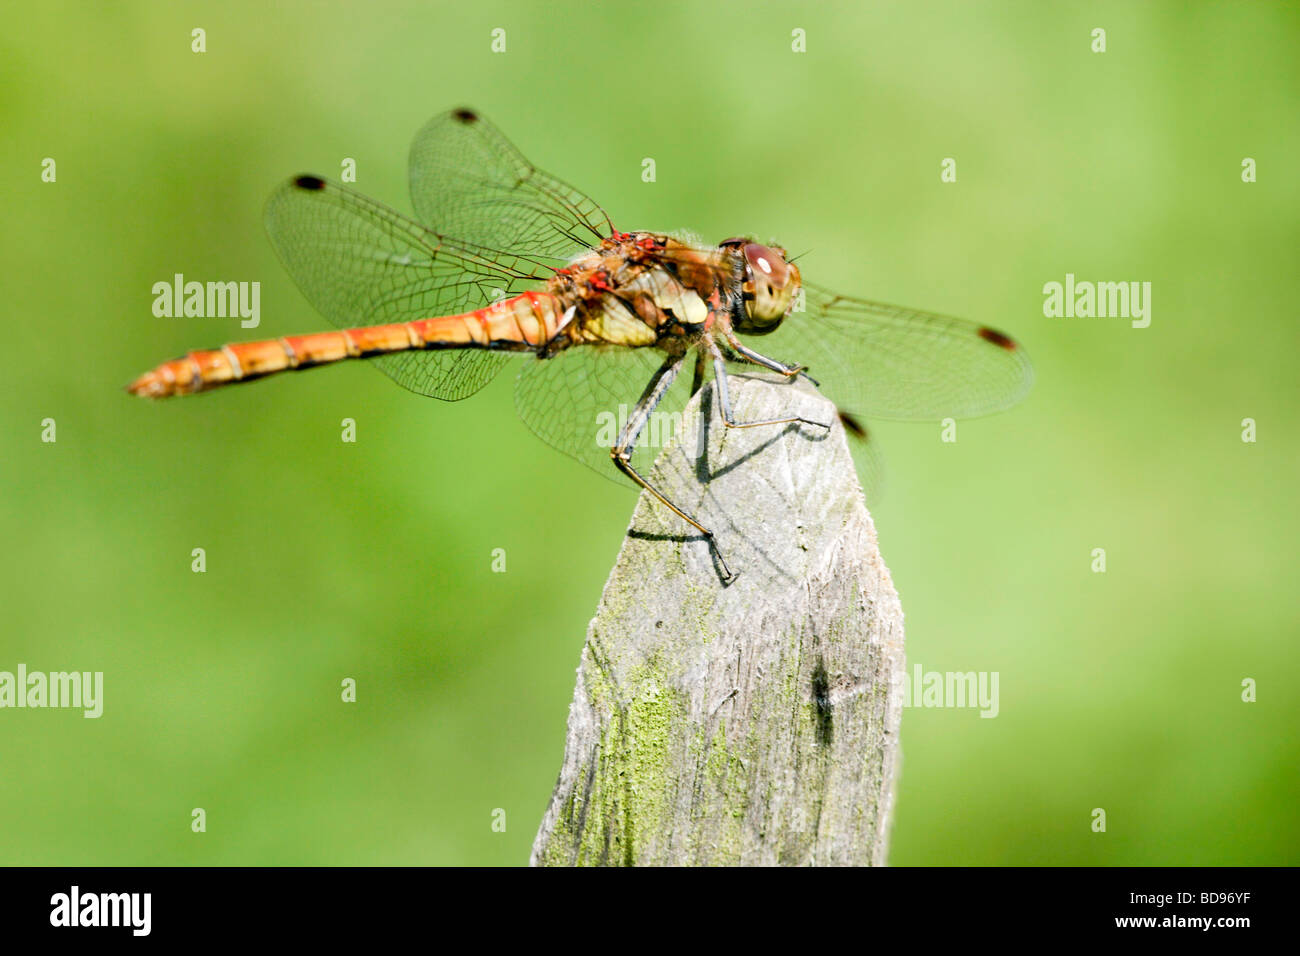 Profile of a brown and yellow dragonfly resting on a mossy fence post Stock Photo